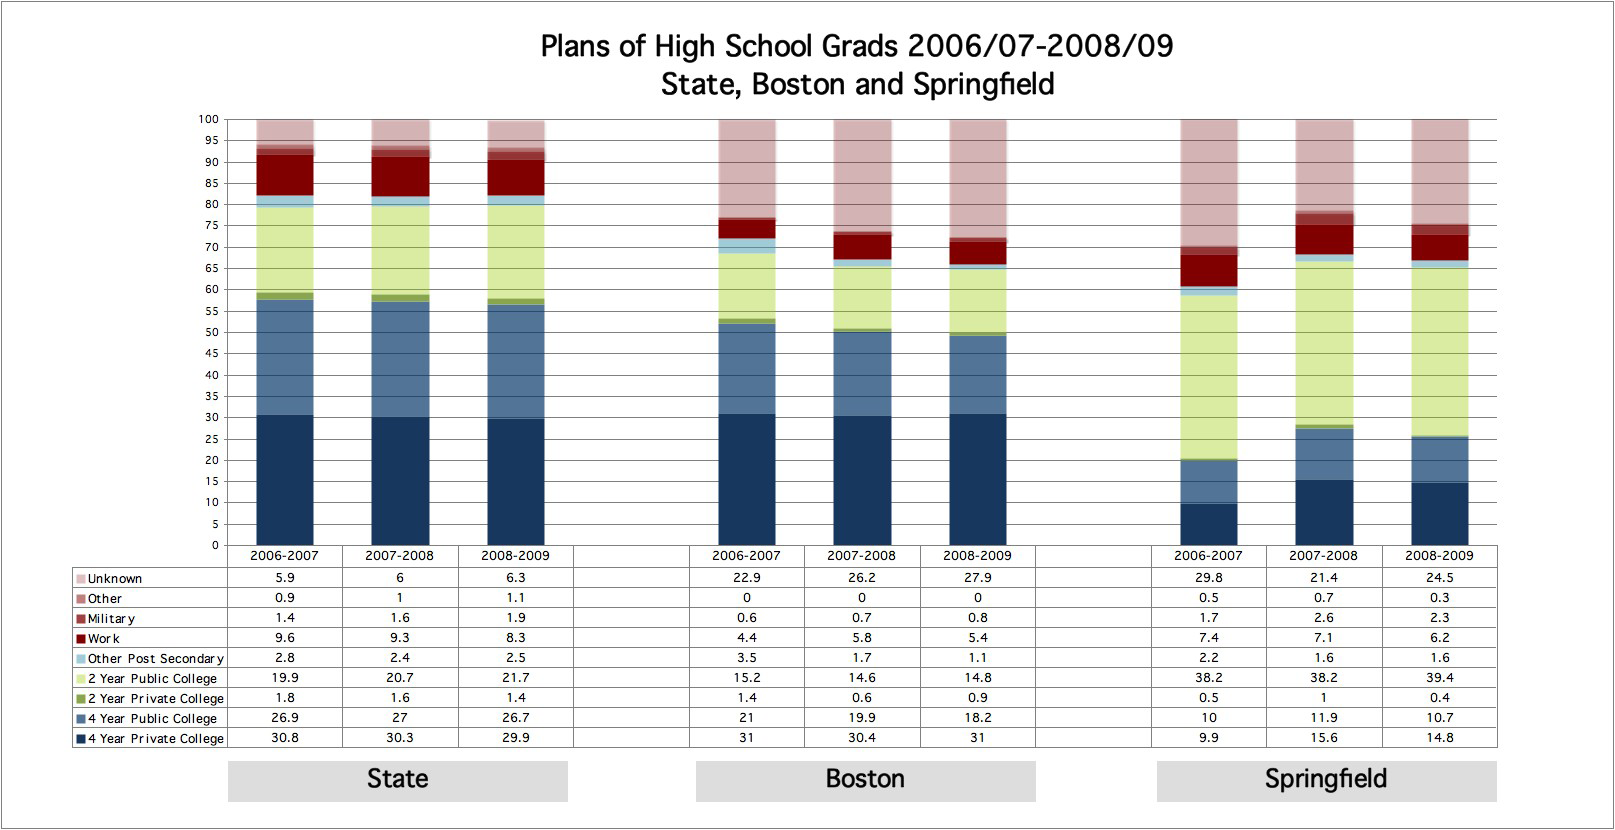 METCO Merits More Figure 12: Graduation Rates 2006-2009, METCO students, Boston, Springfield